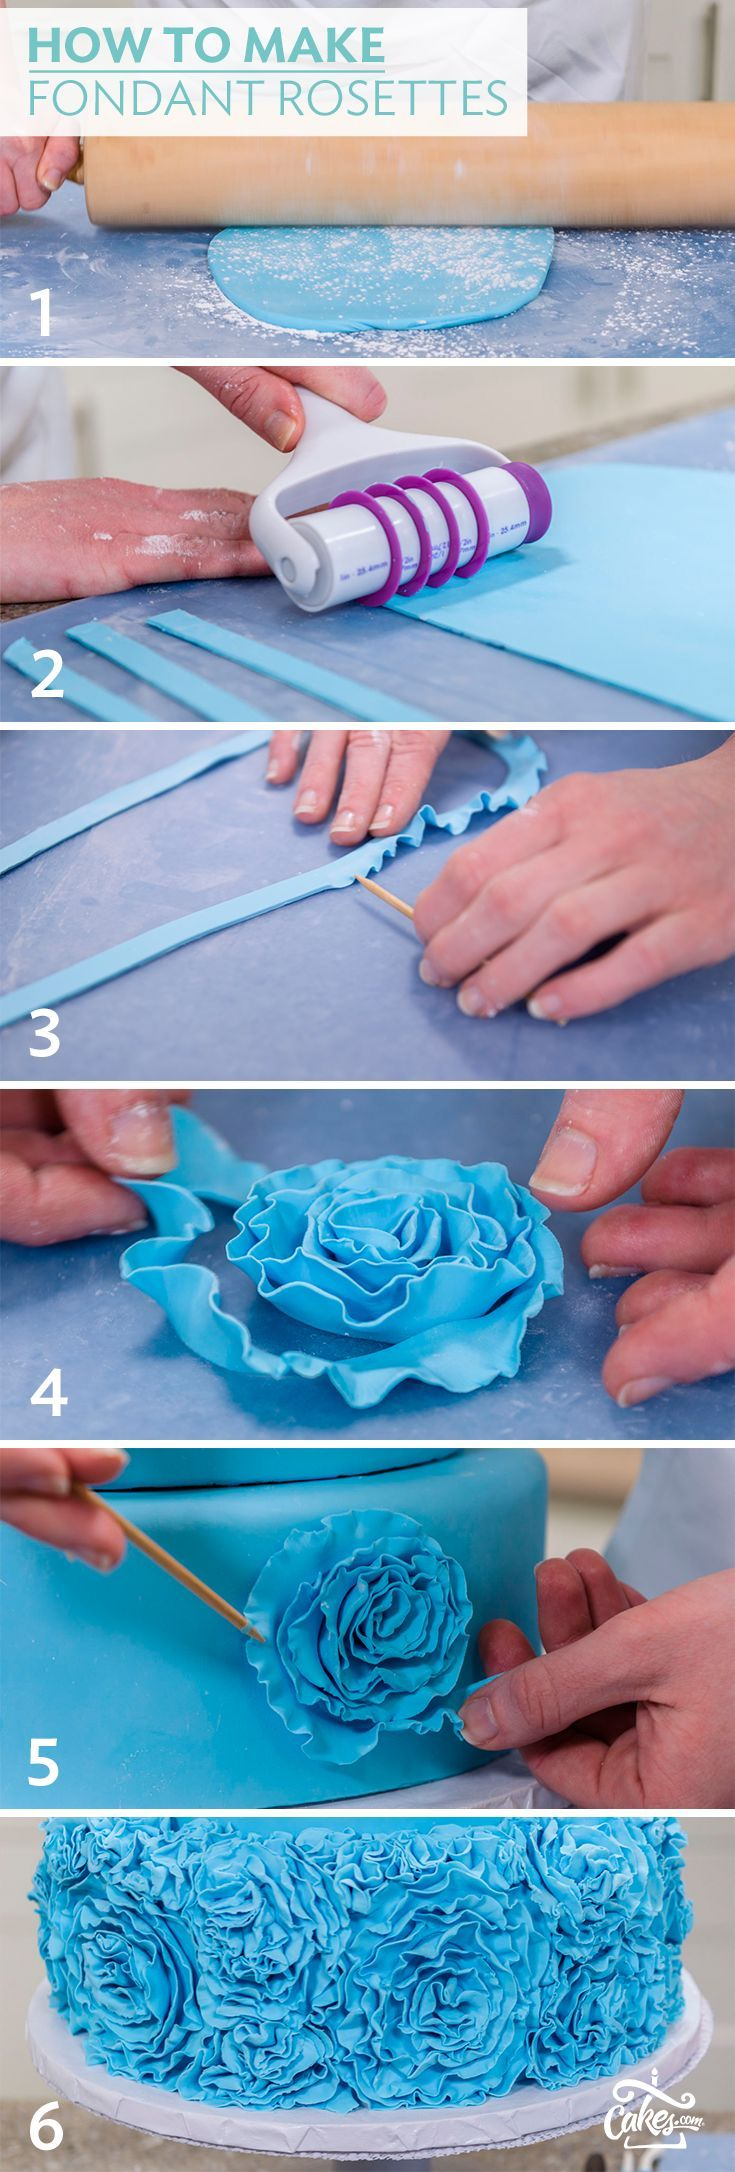 How To Make Fondant Rosette And Apply To Cake